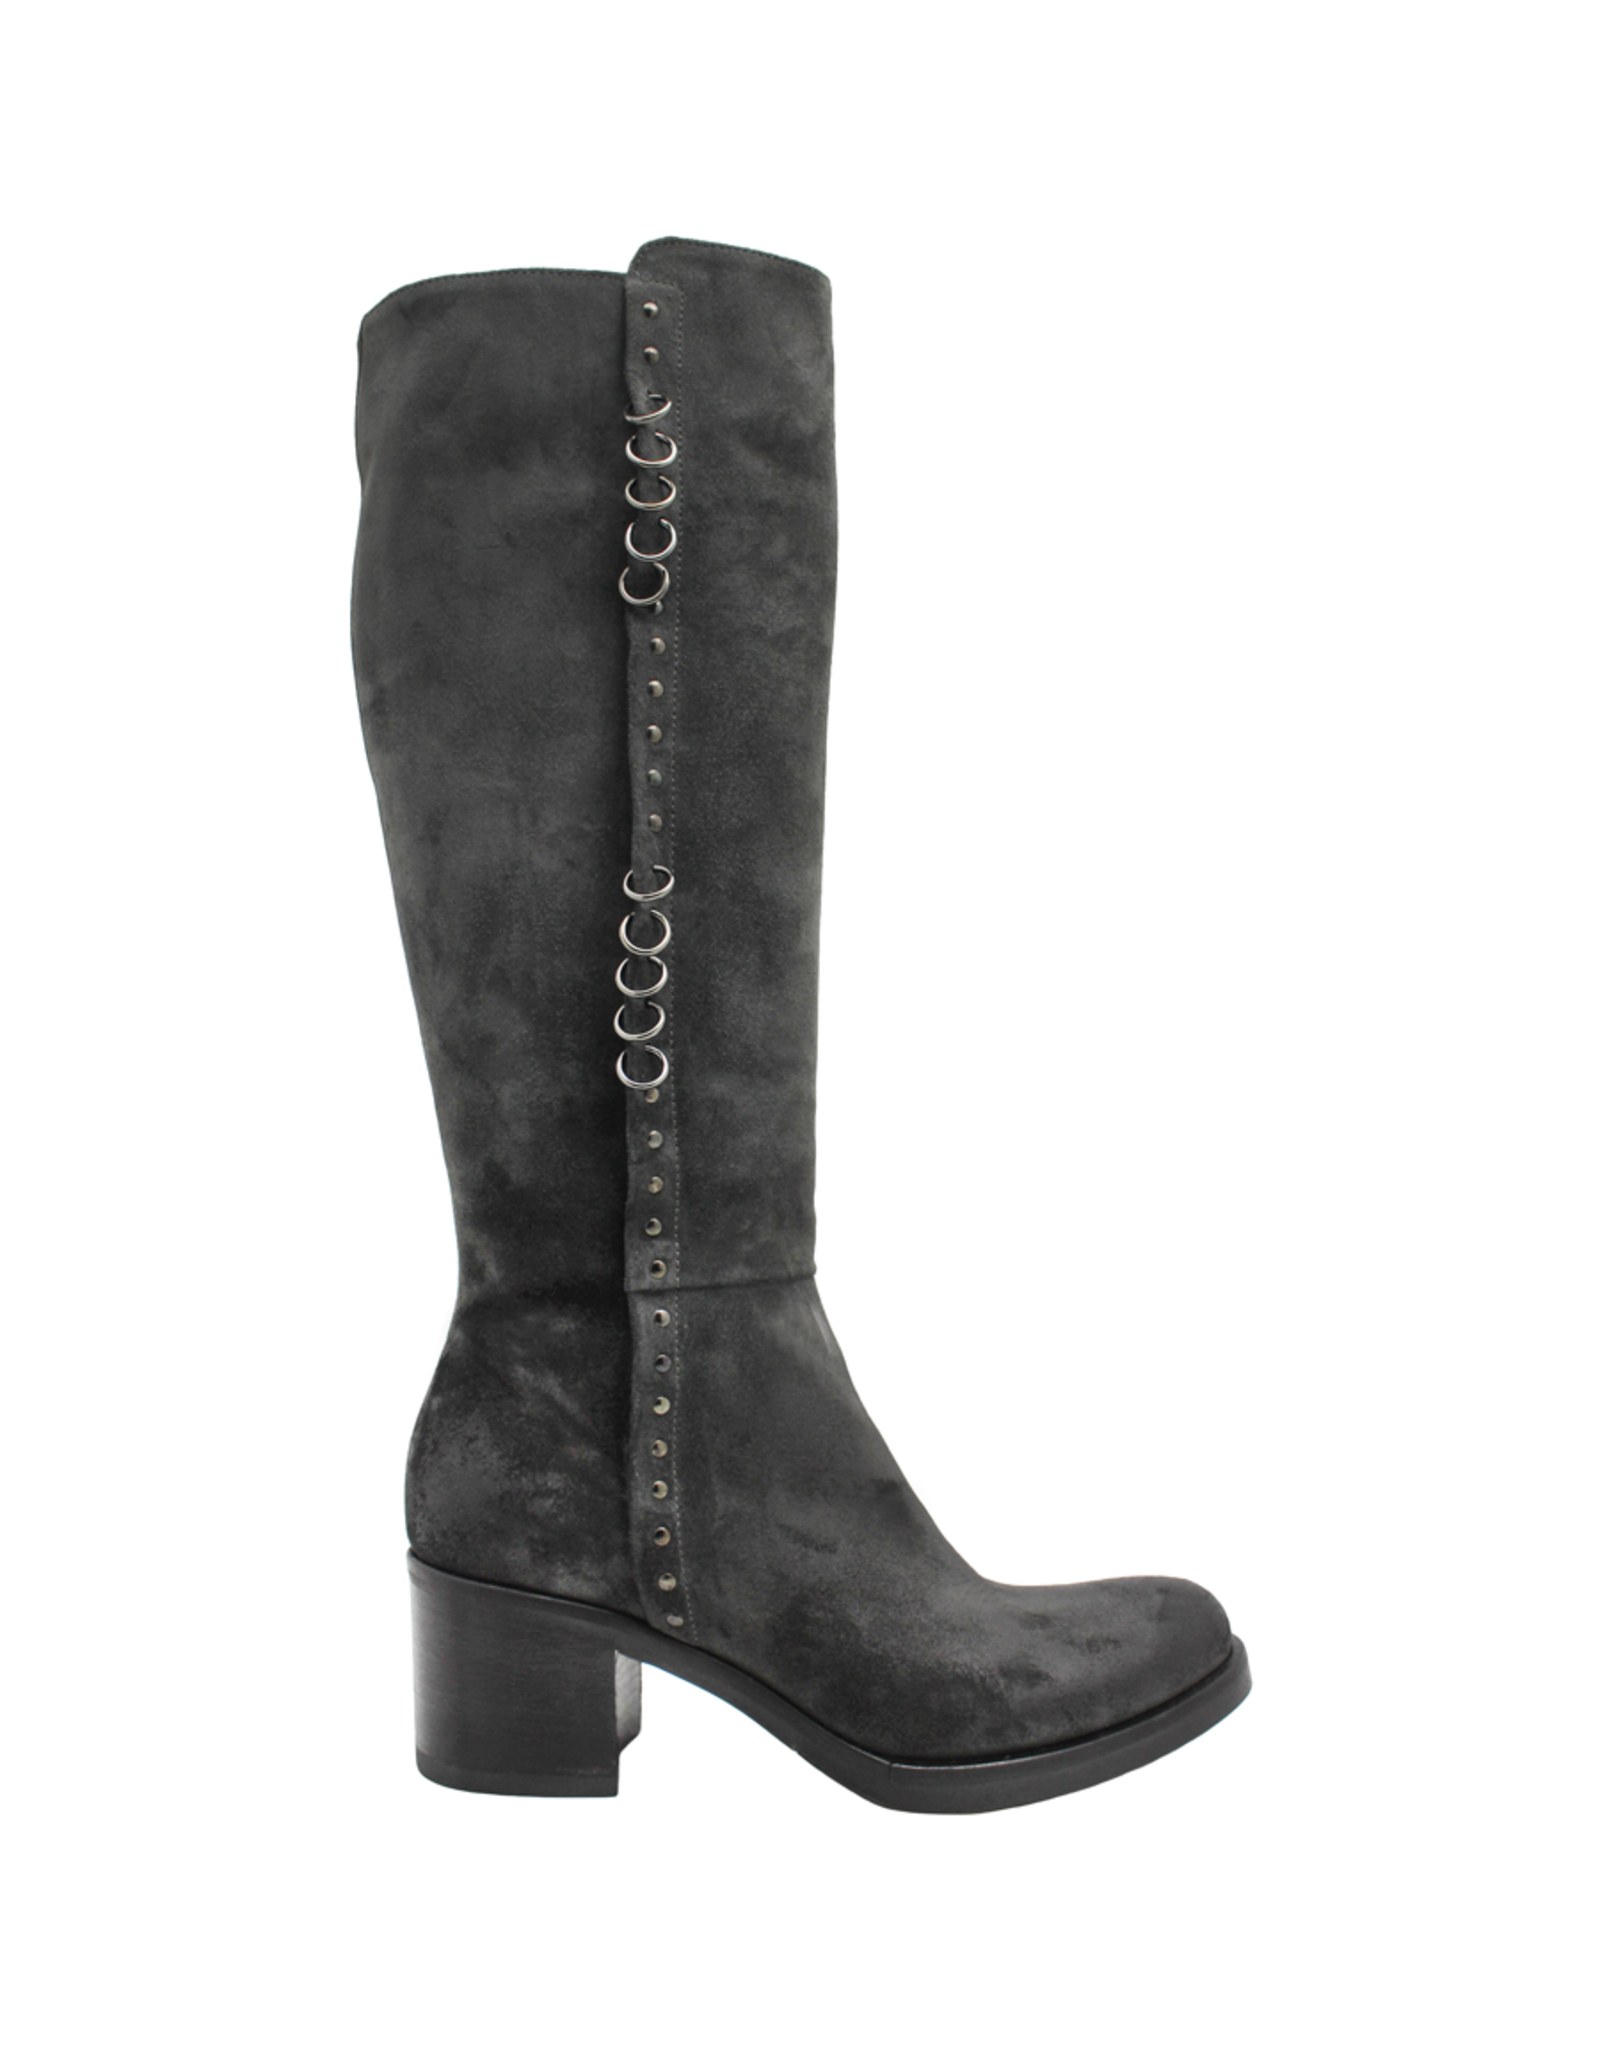 Now Now Graphite Suede Knee Boot With Pierced Rings 6014